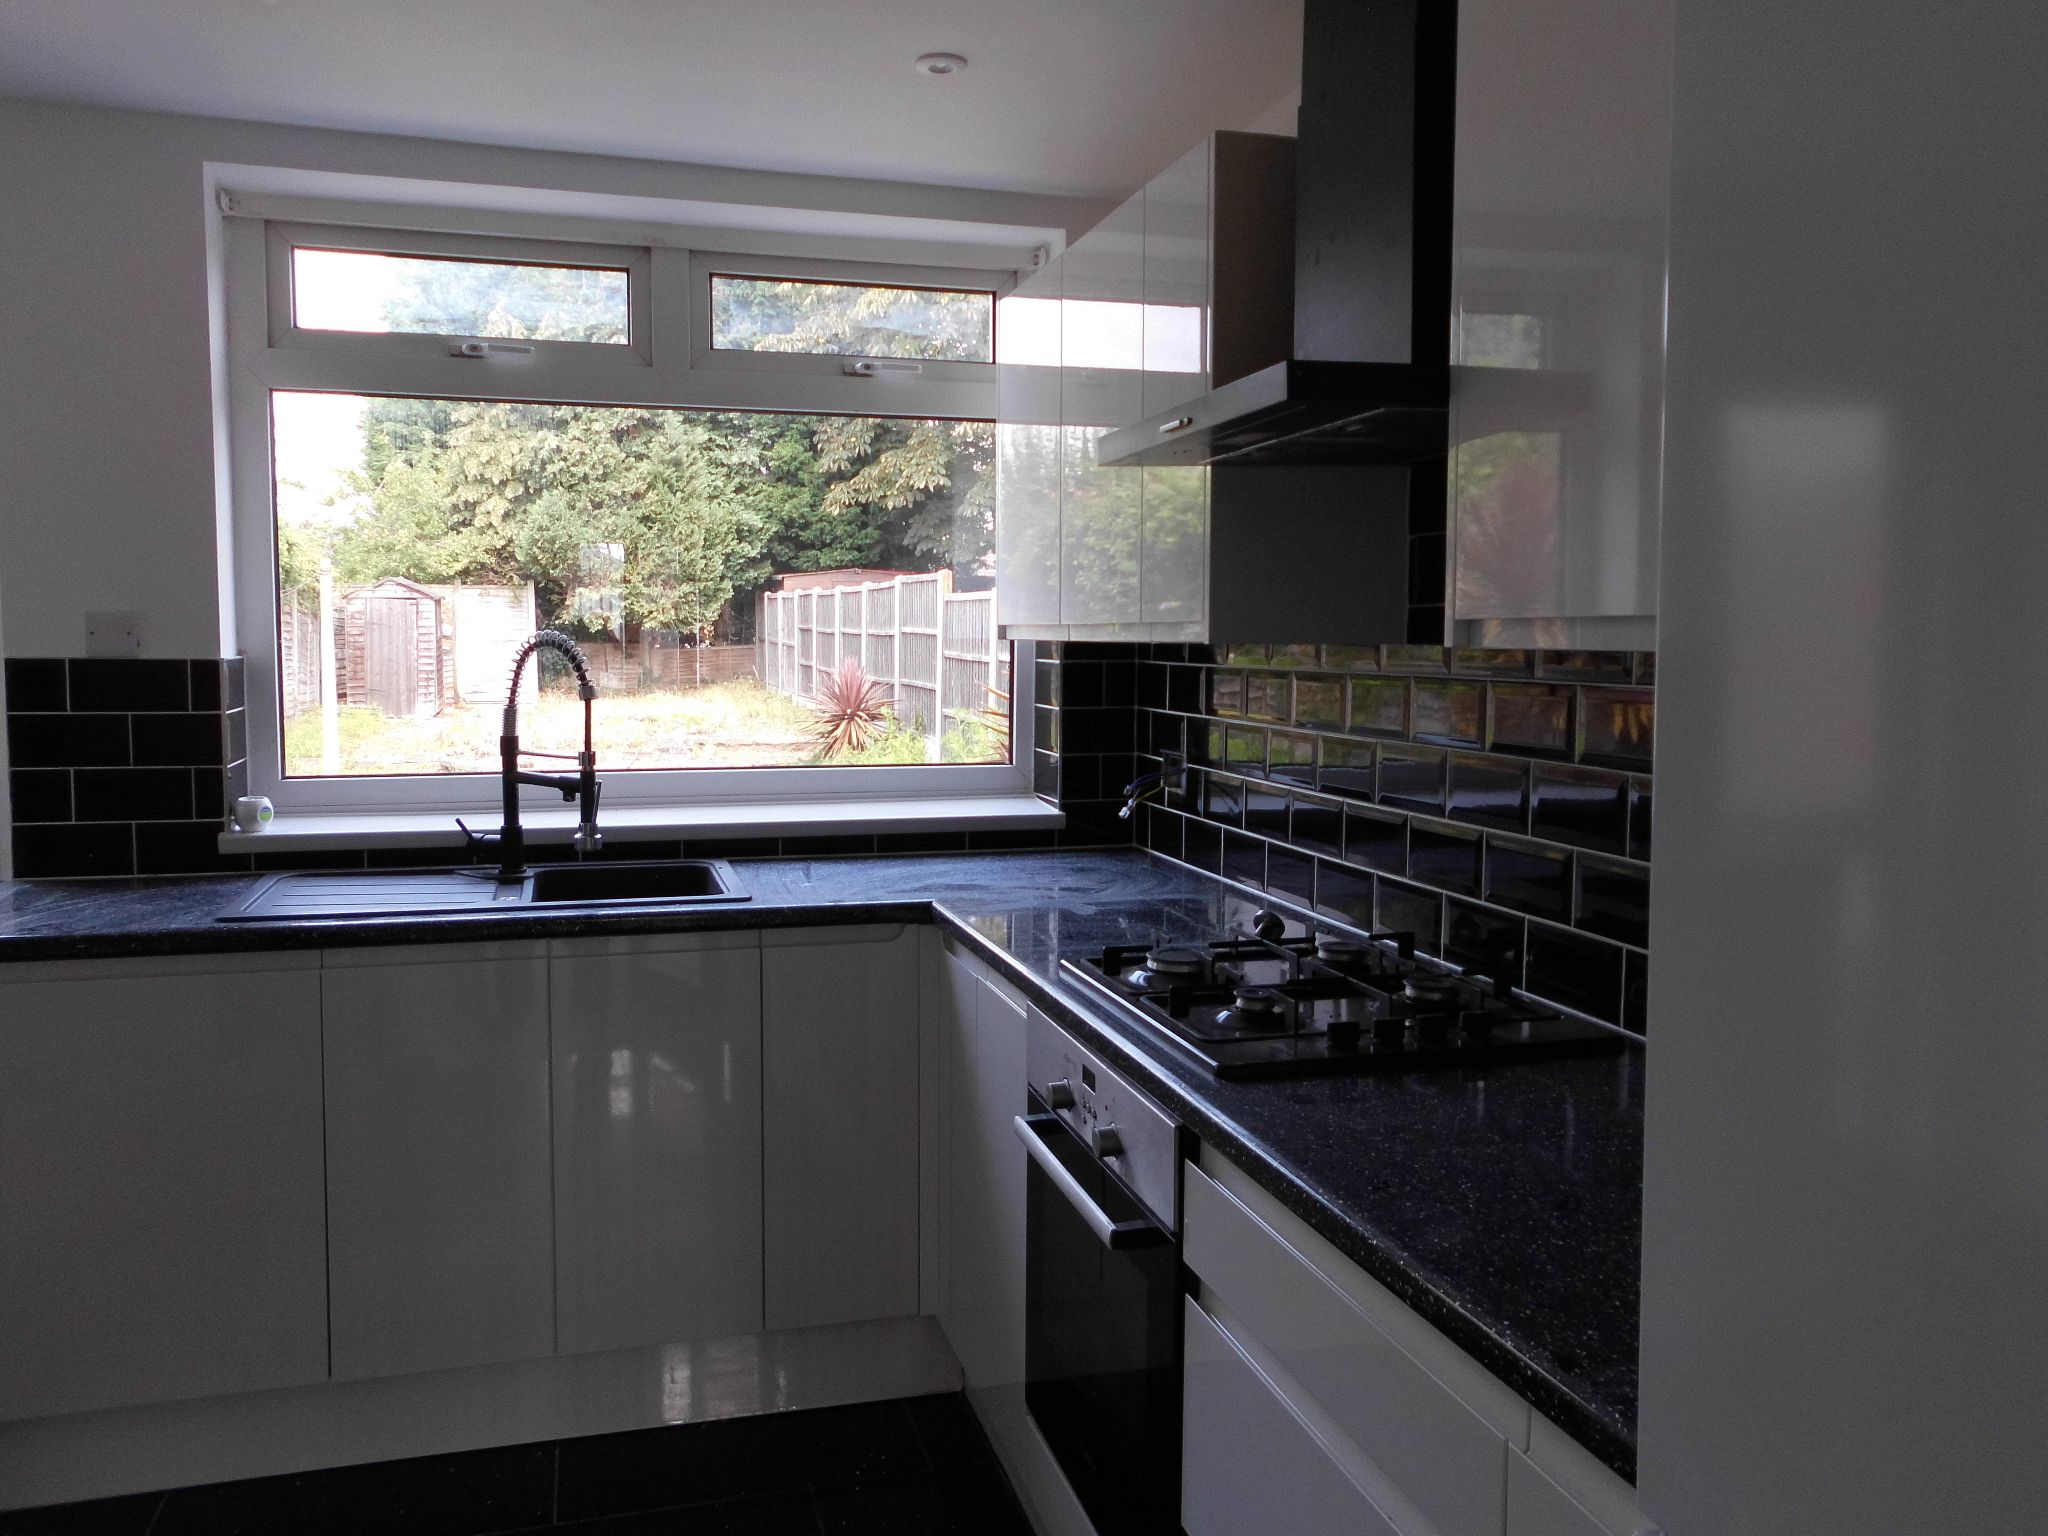 3 bedroom semi-detached house Reserved in Leicester - Photograph 5.